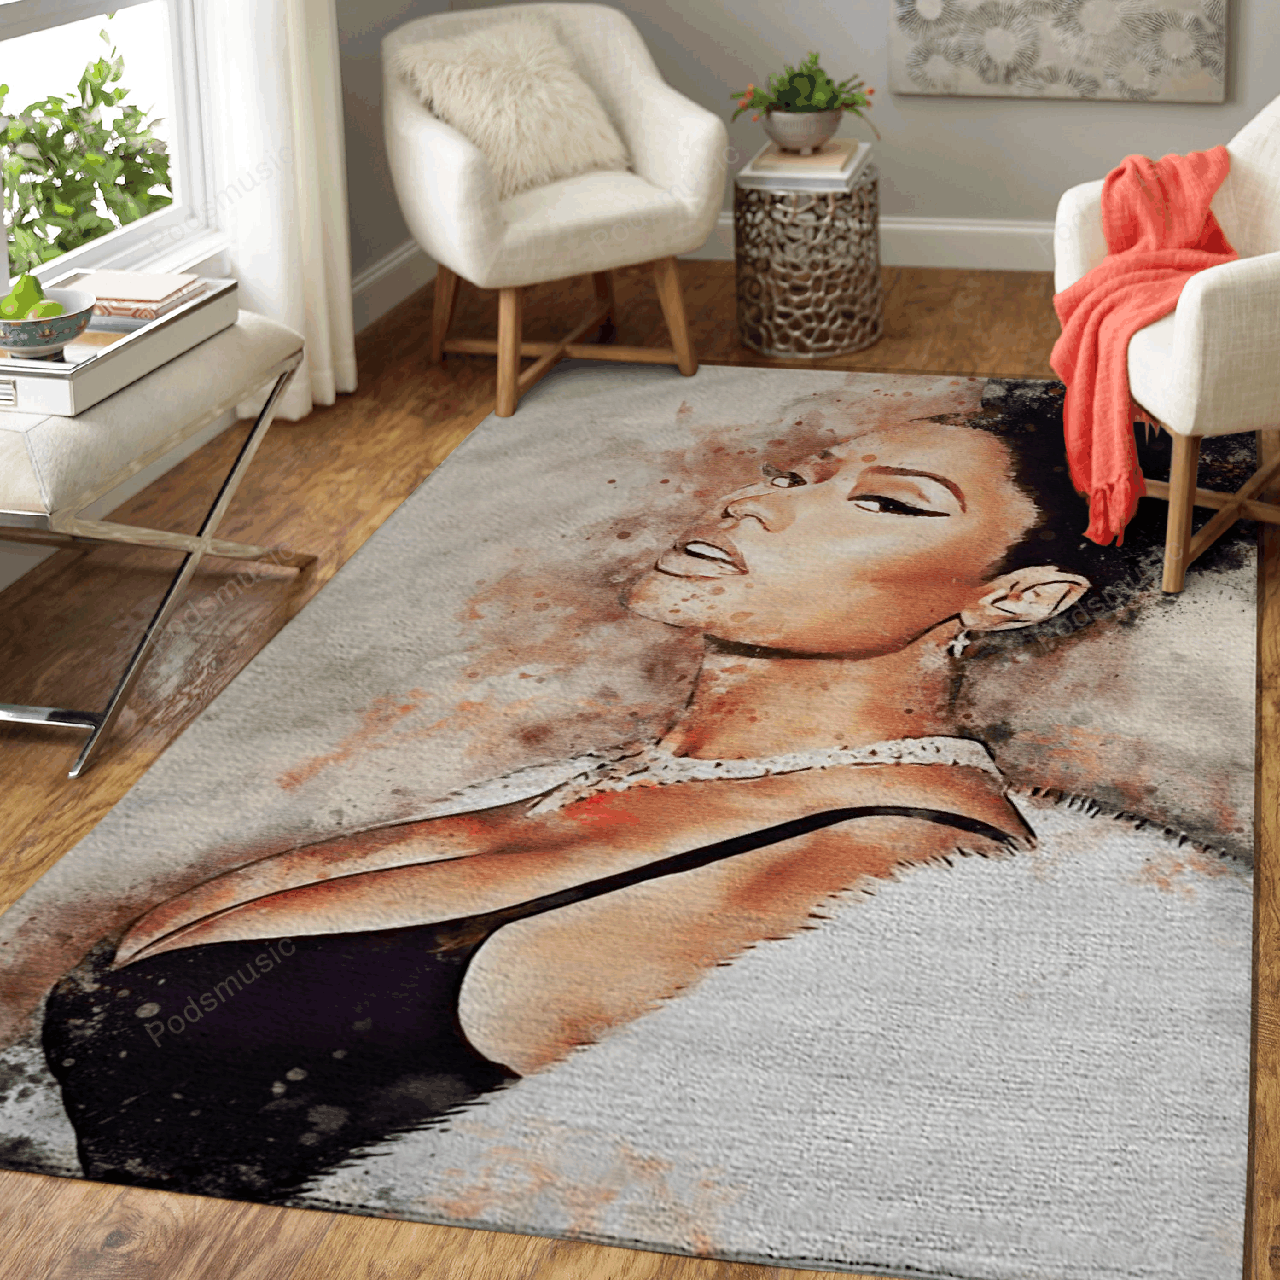 Nicki Minaj - Rapper Music World Art For Fans Area Rug Living Room Carpet Floor Decor